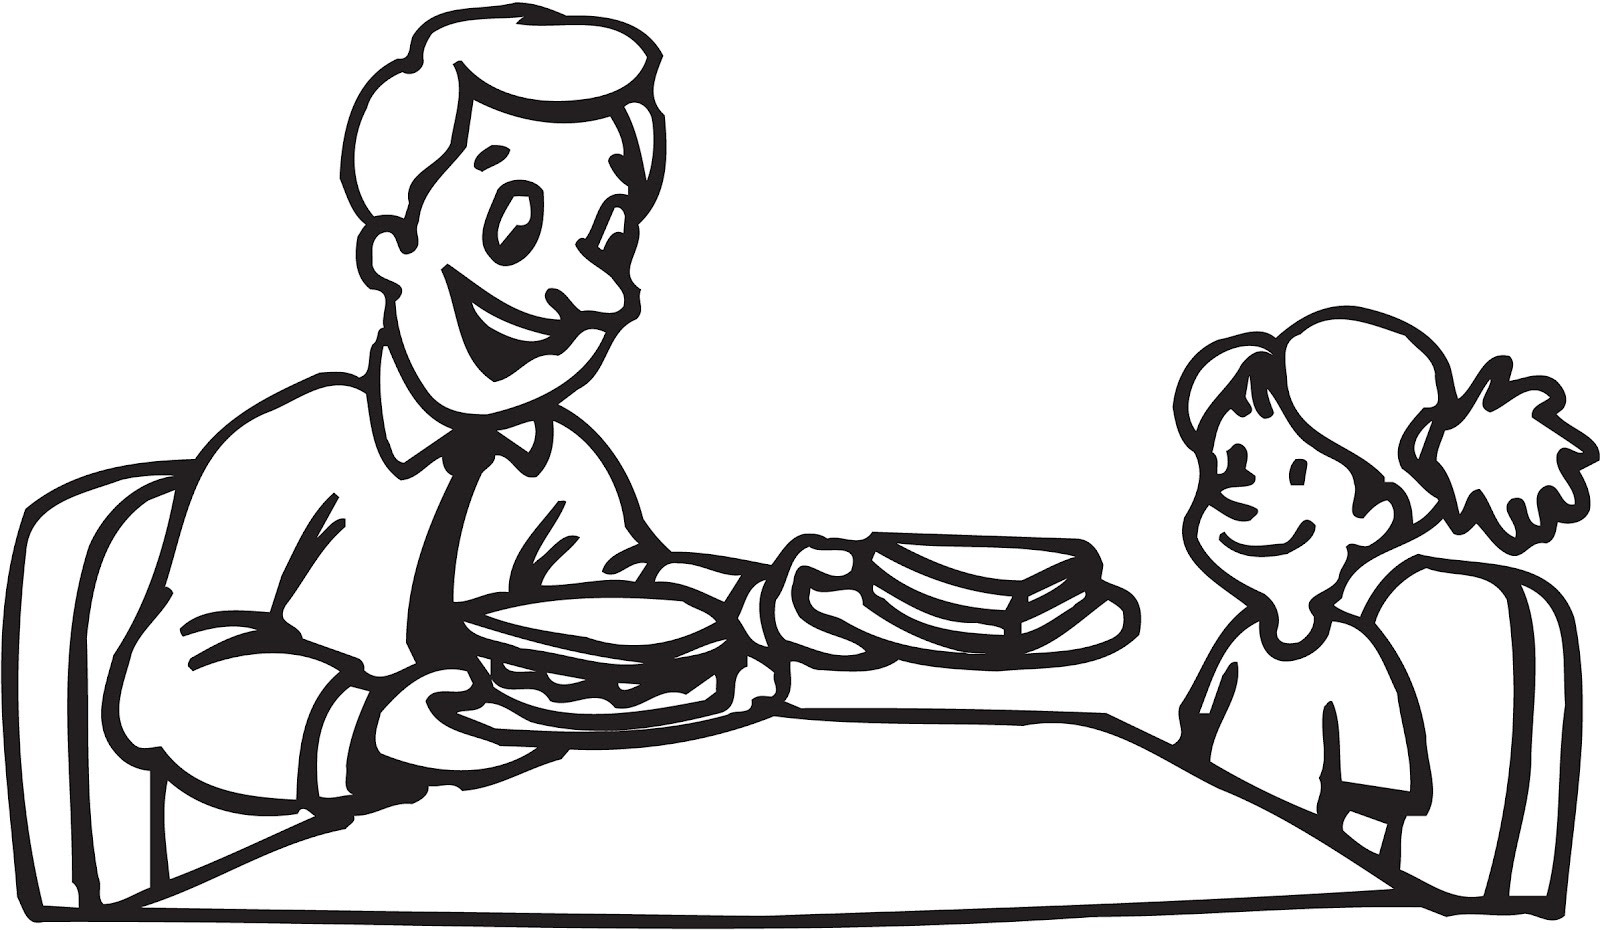 Father Daughter Silhouette Clip Art At Getdrawings